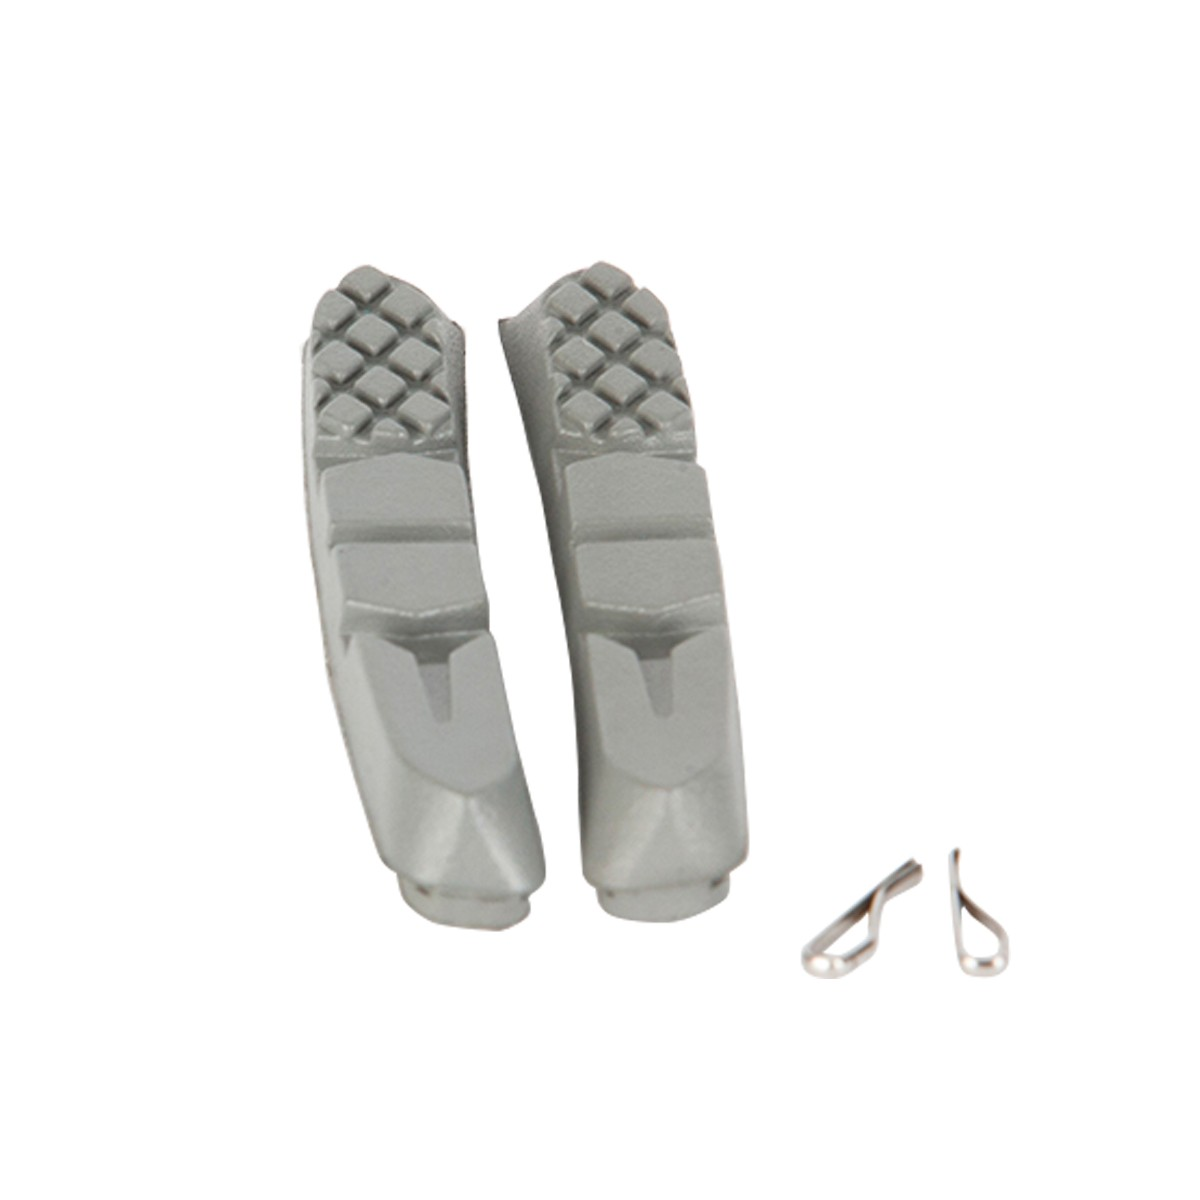 AVIAN CARBON SPECIFIC BRAKE PAD INSERTS